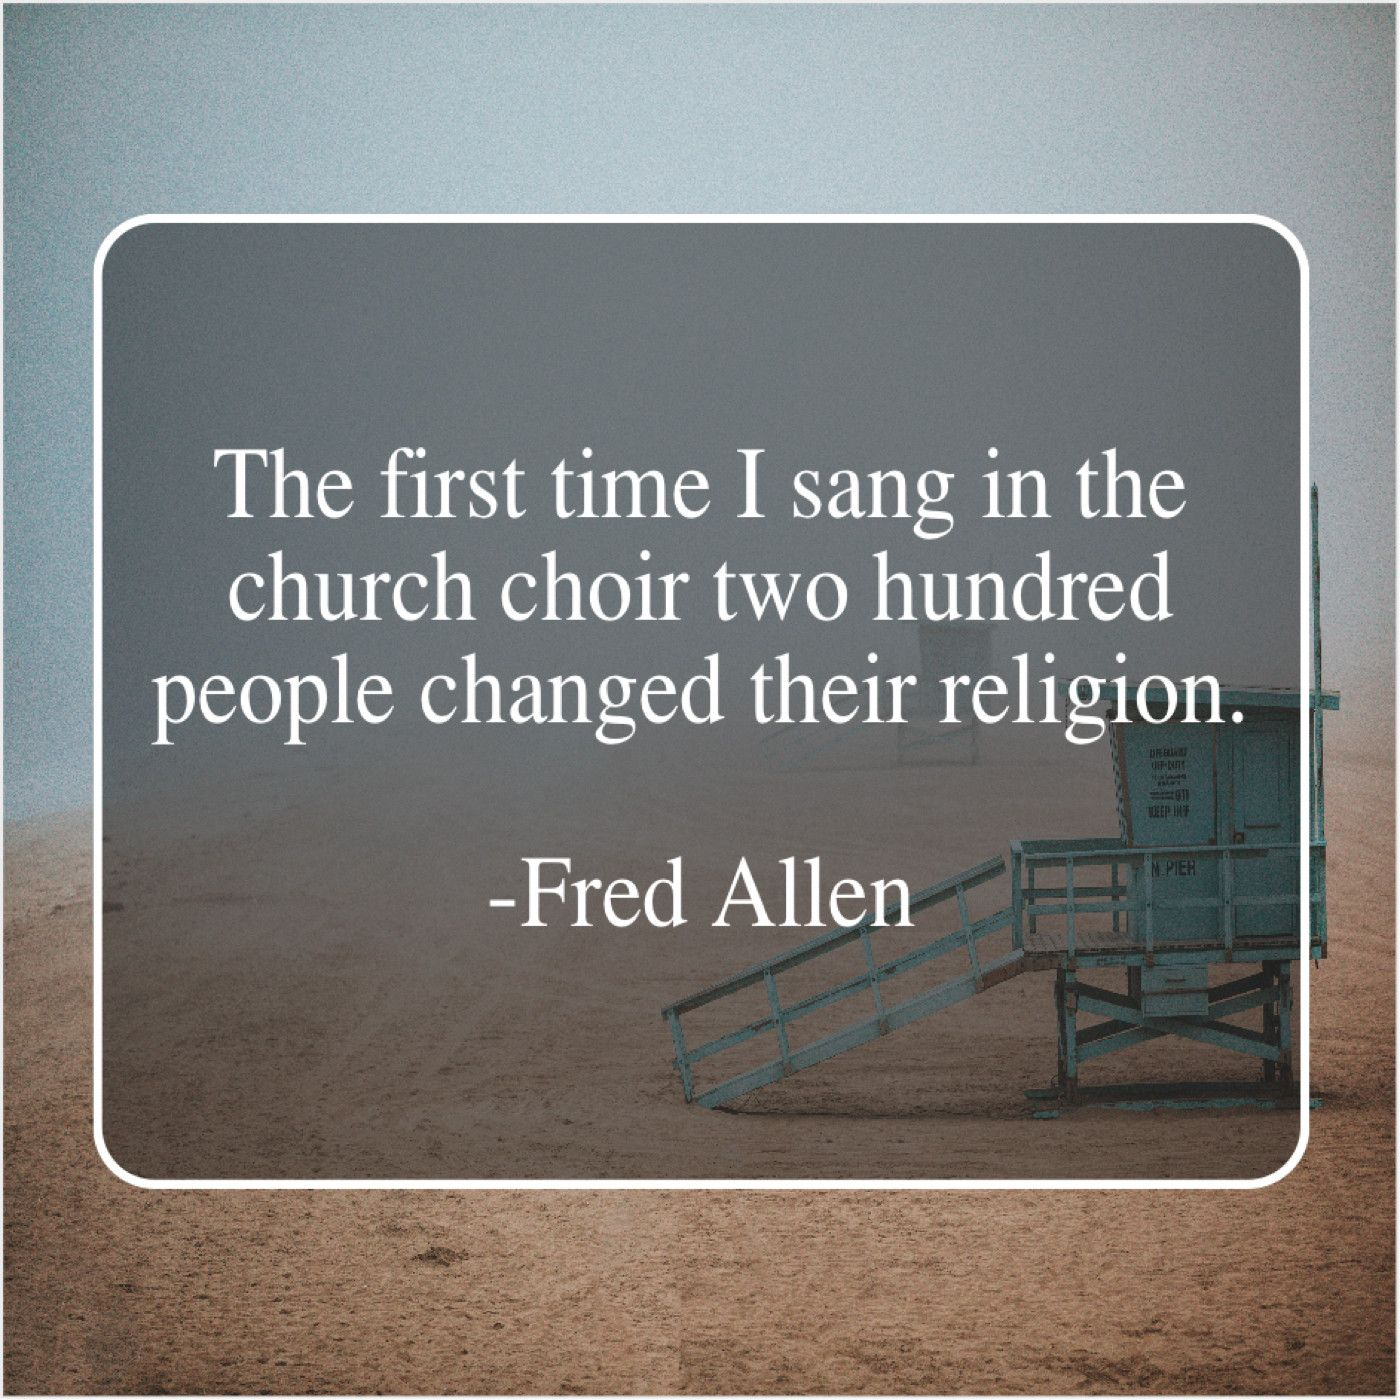 Get More Free Quotes Click The Image Fred Allen The first